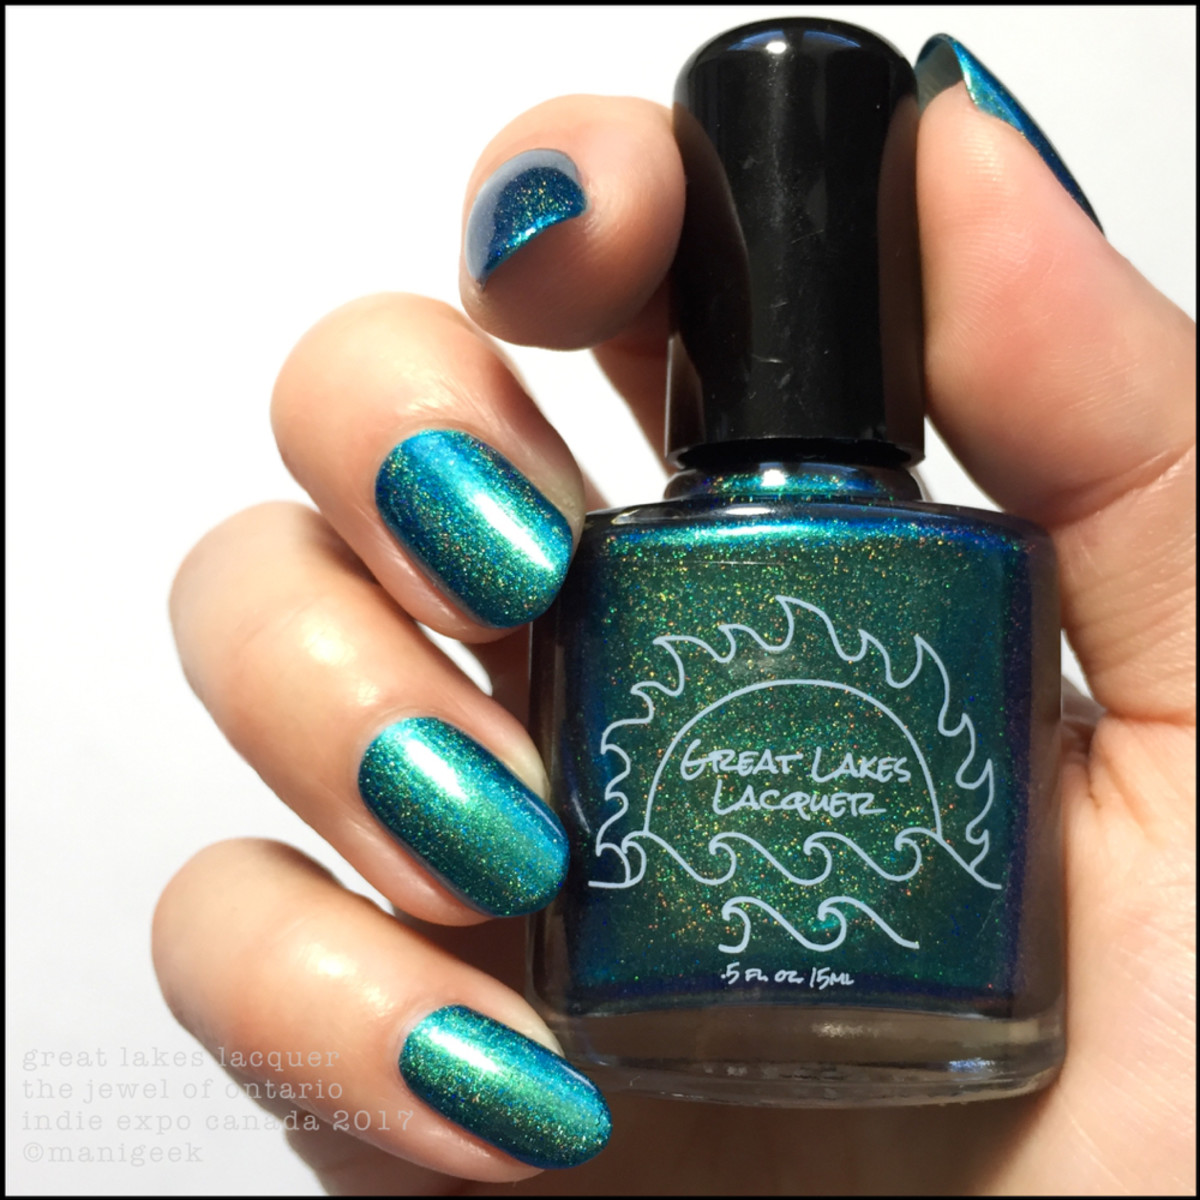 Great Lakes Lacquer The Jewel of Ontario_limited edition Indie Expo Canada 2017